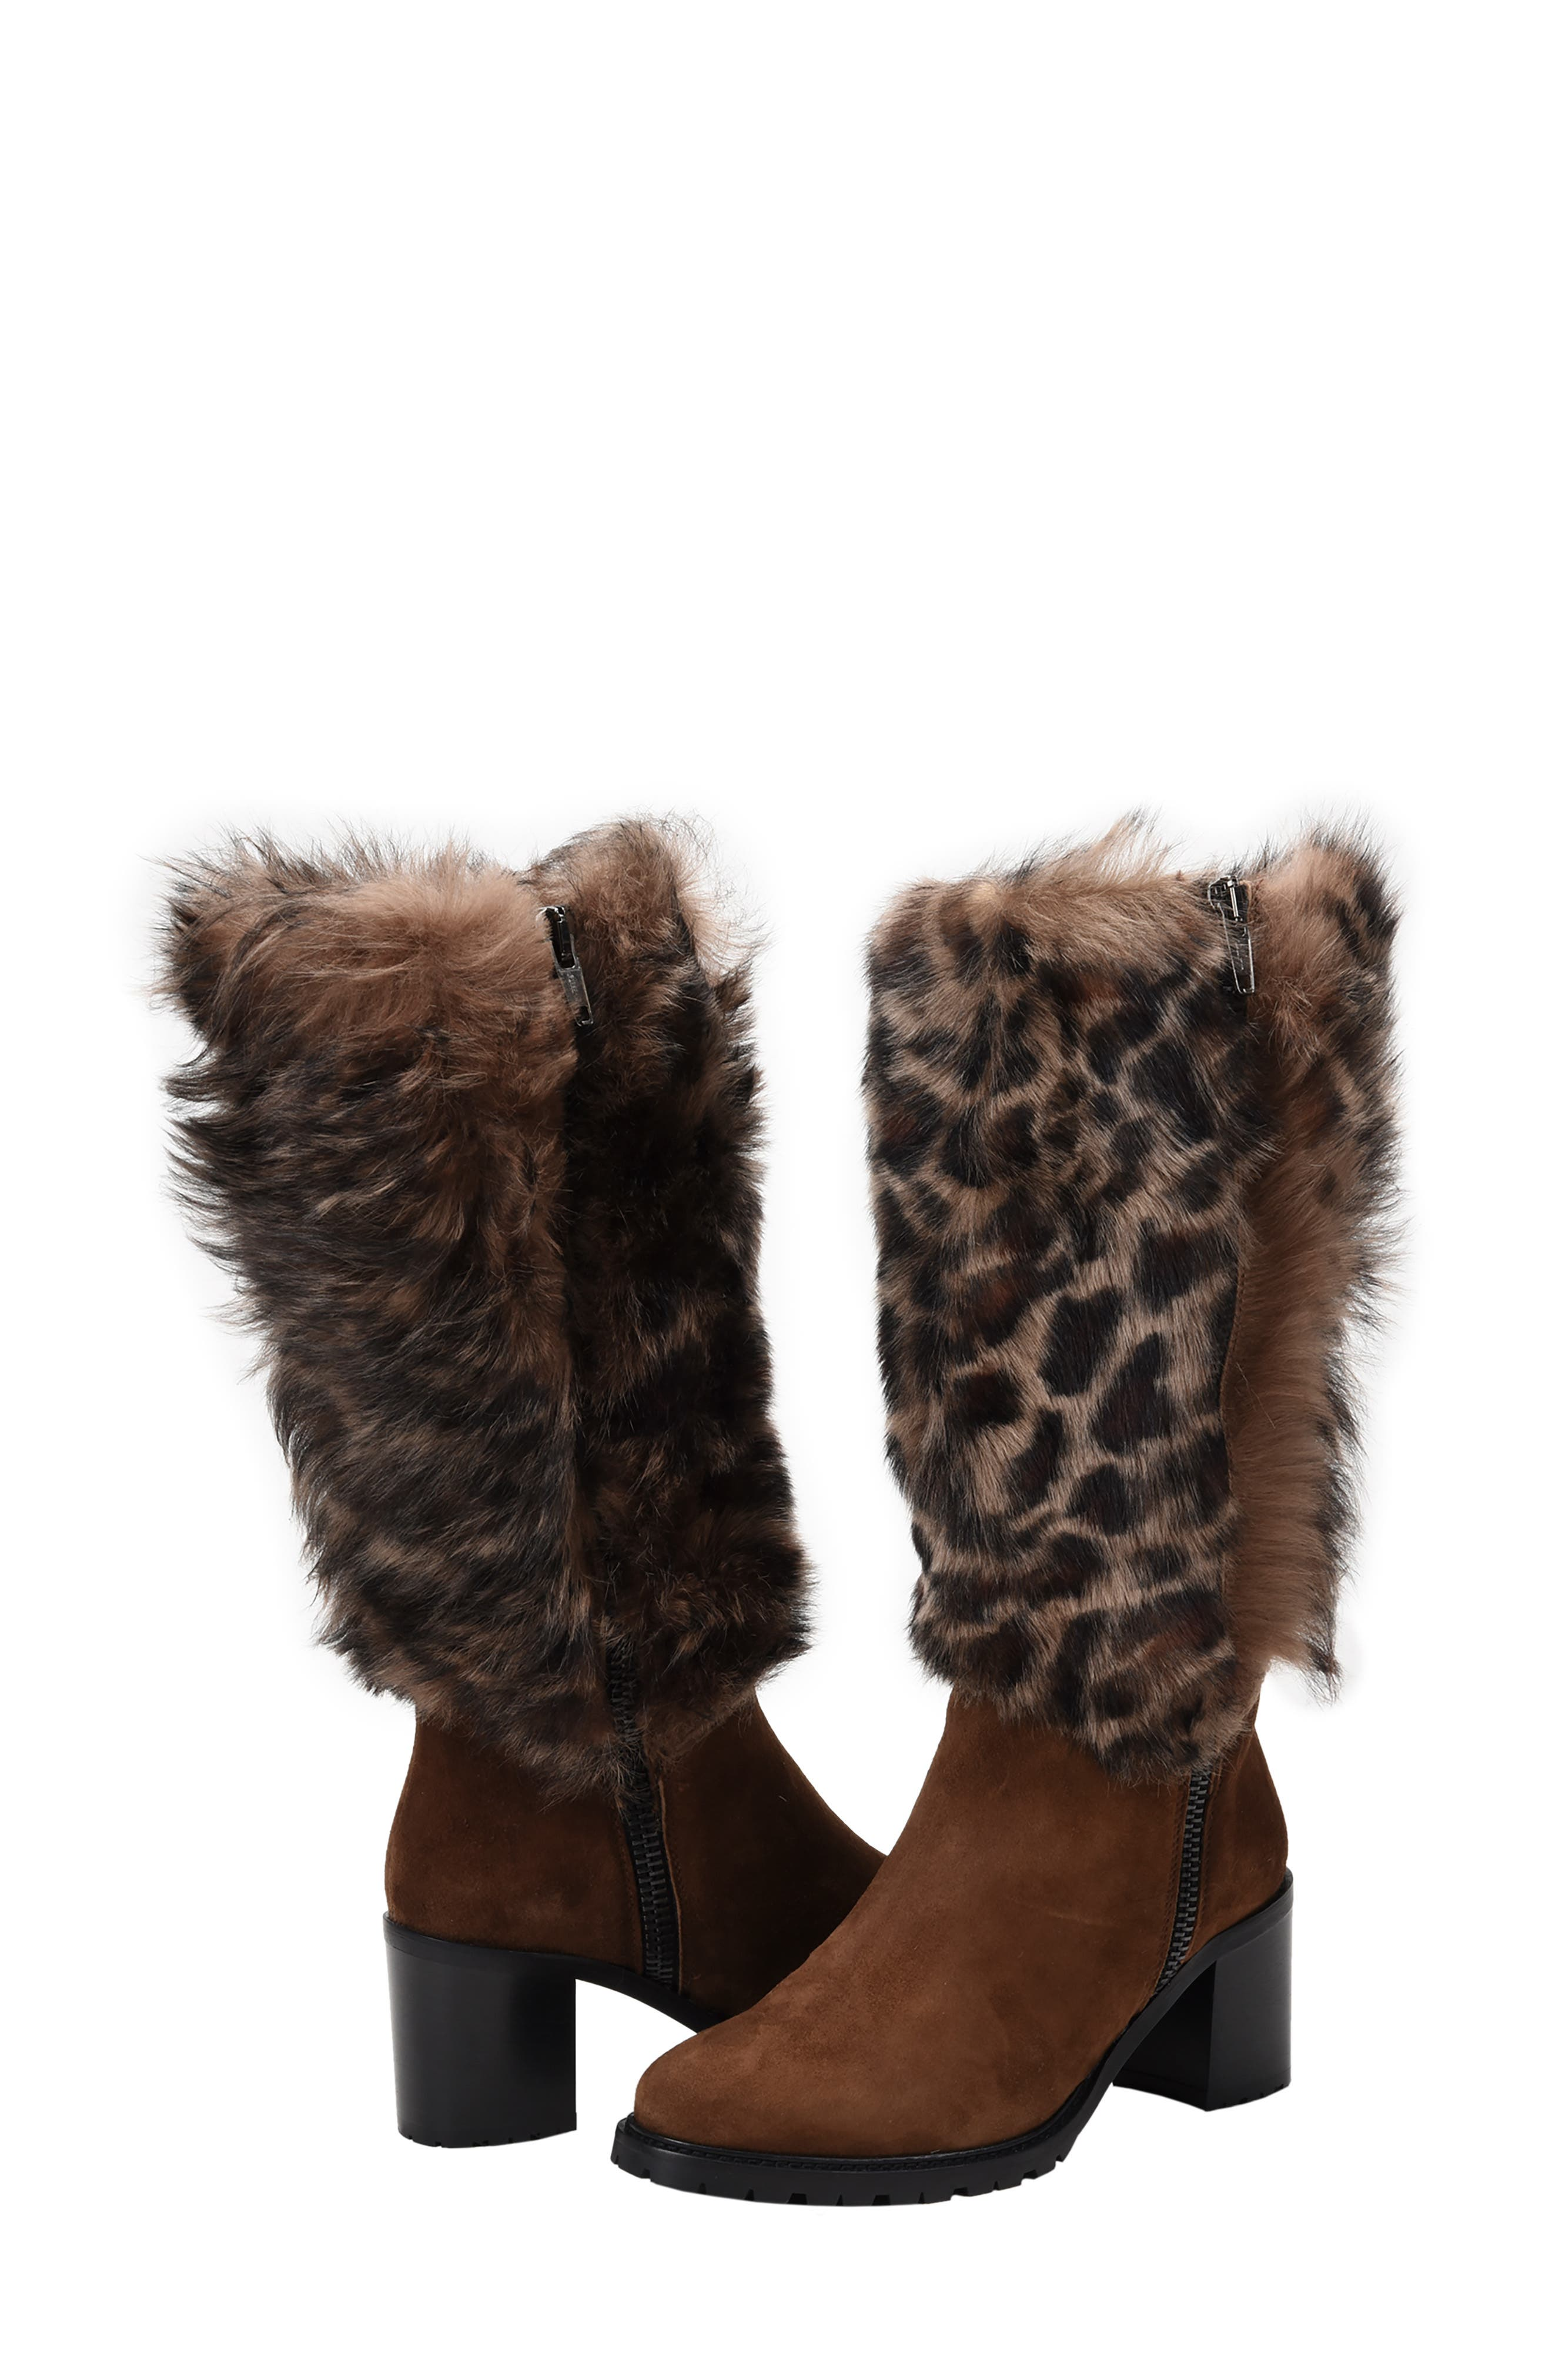 Weatherproof Genuine Shearling Boot,                             Alternate thumbnail 8, color,                             LEOPARD LEATHER